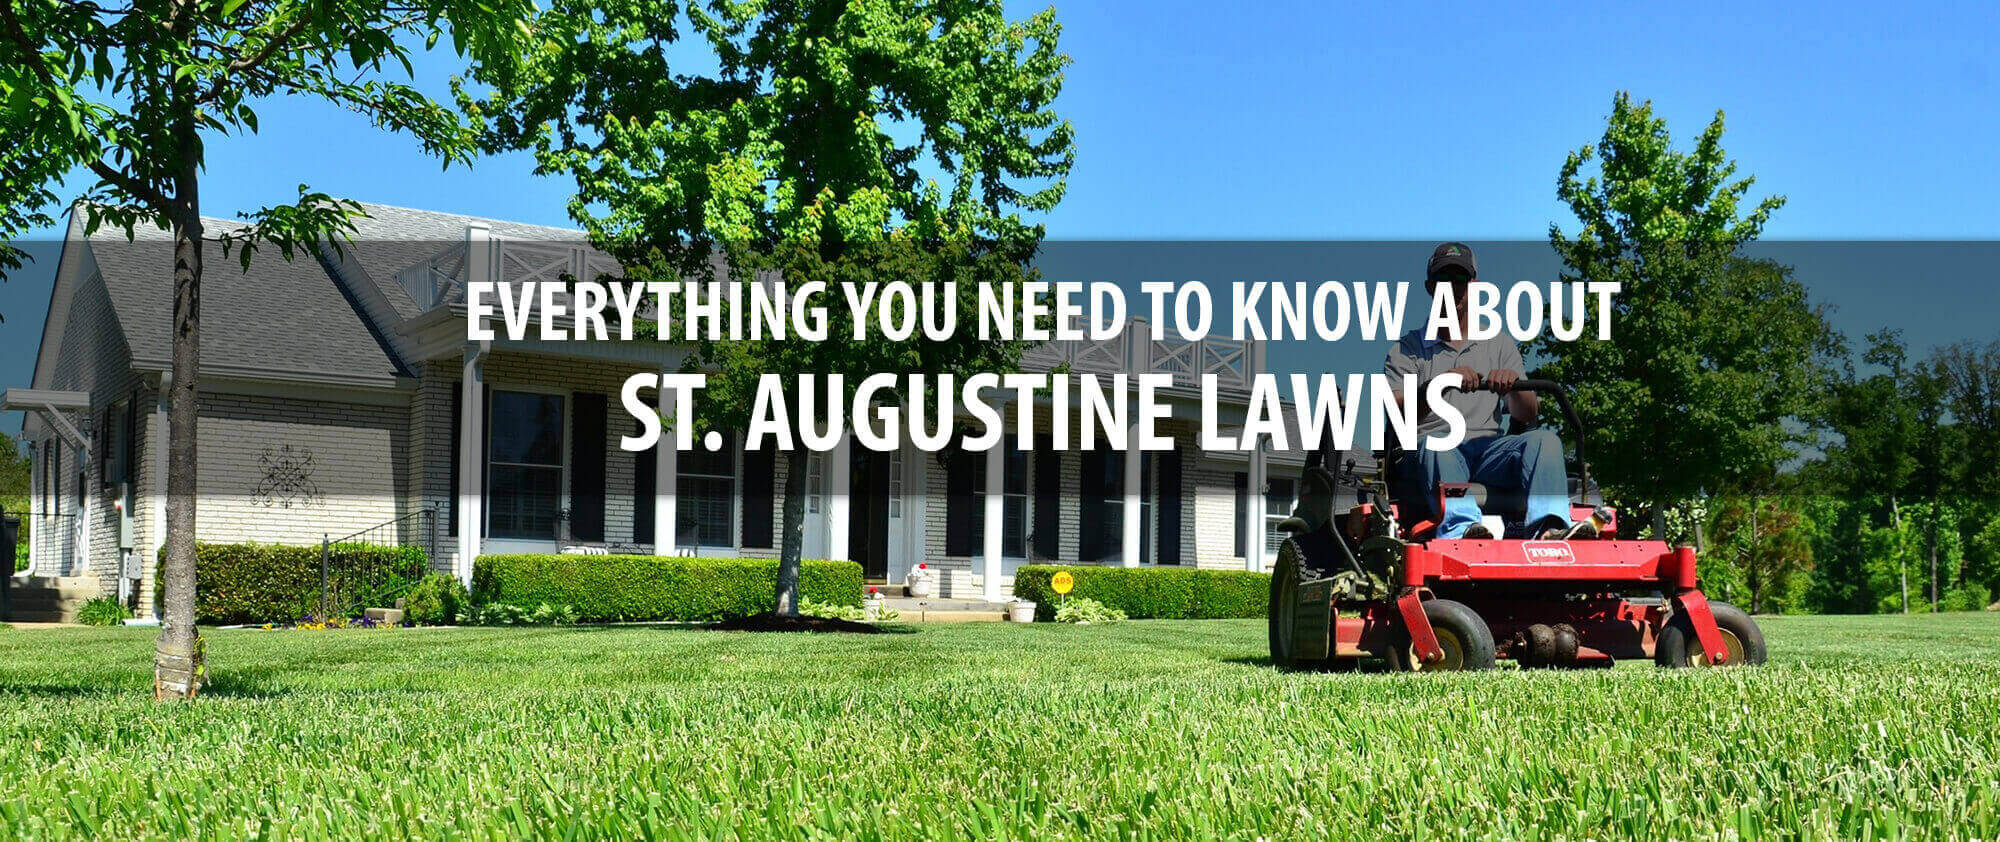 st-augustine-lawn-care